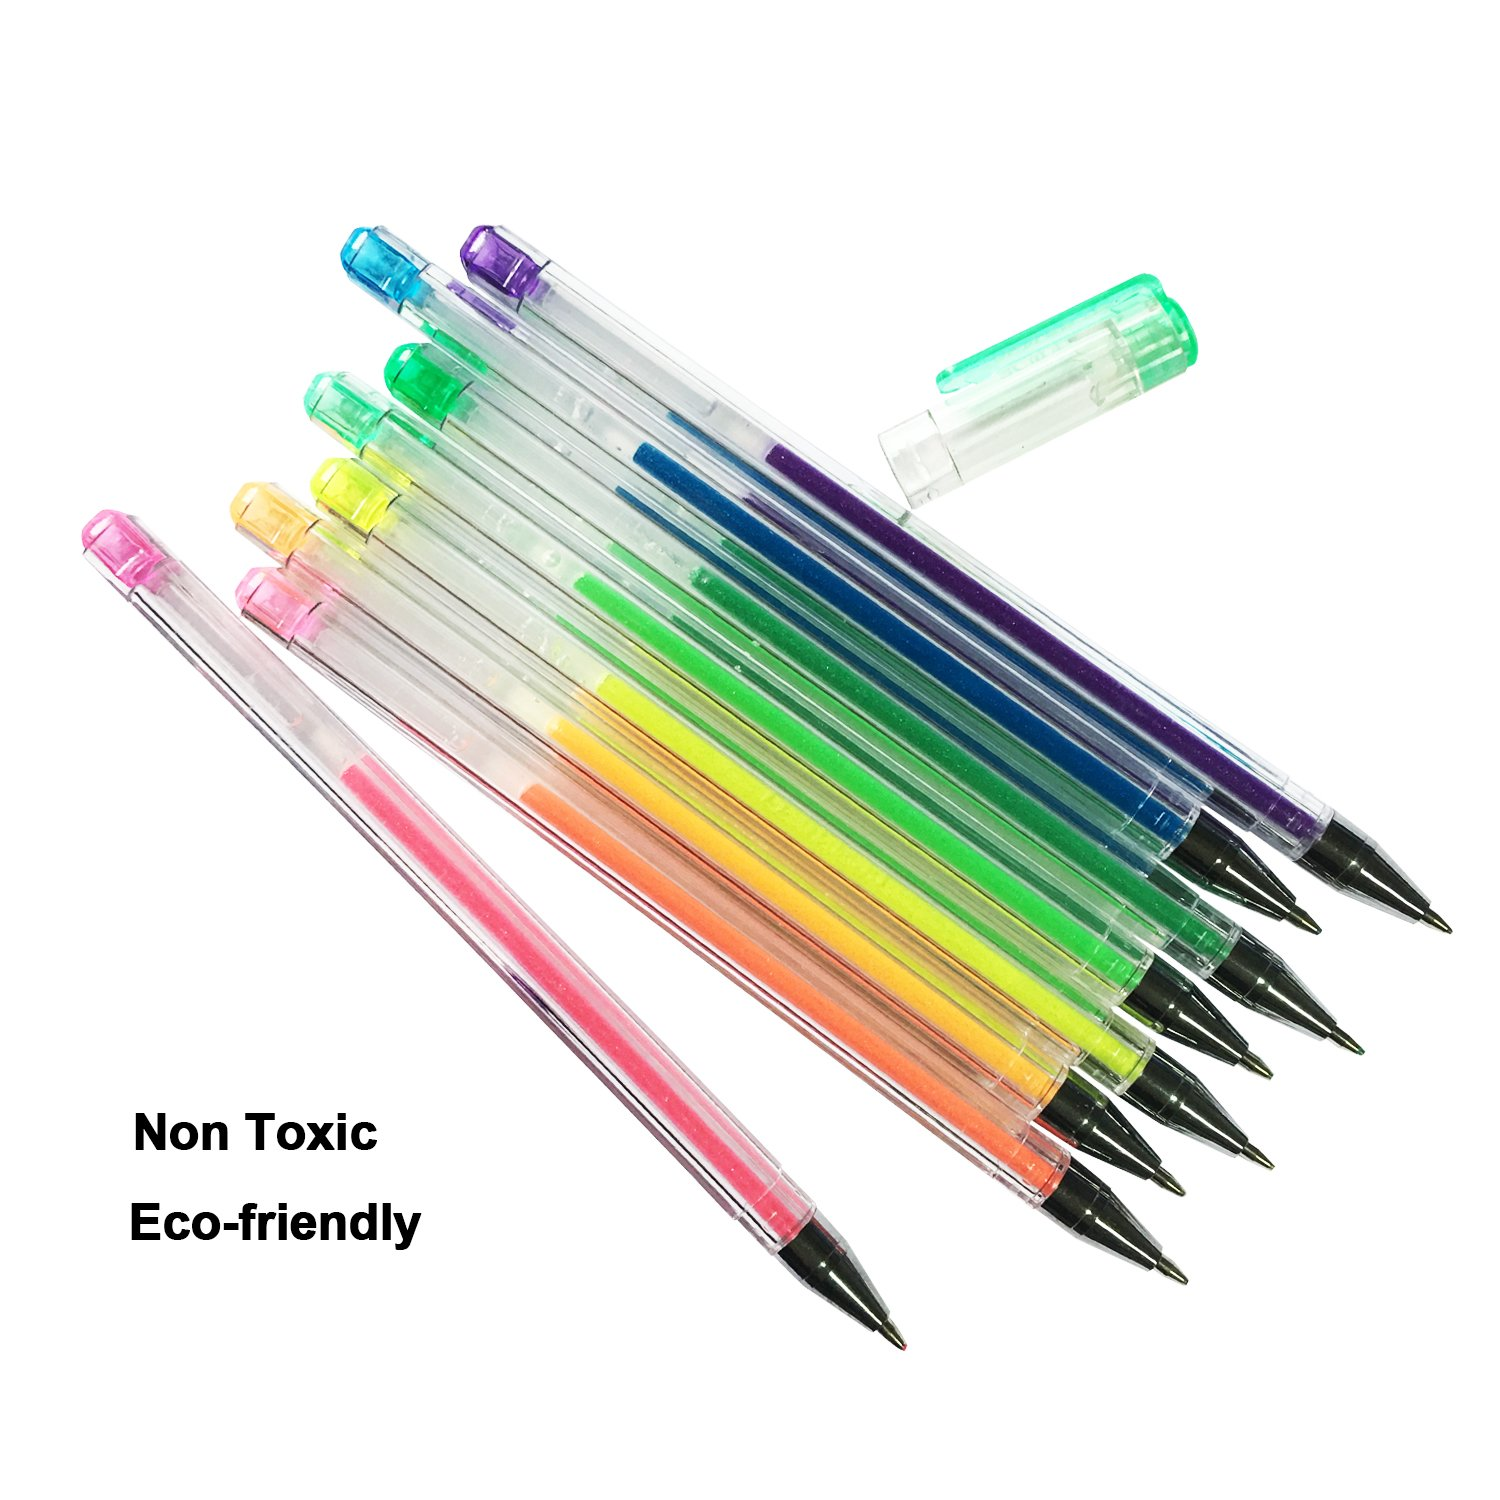 12 Colors Glitter Gel Pen Set with 0.8mm, Fluorescent Pens Coloring Set for Adult Coloring Books Bullet Journal Crafting Doodling Drawing Art Markers (12 pcs/set) by Lasten (Image #4)